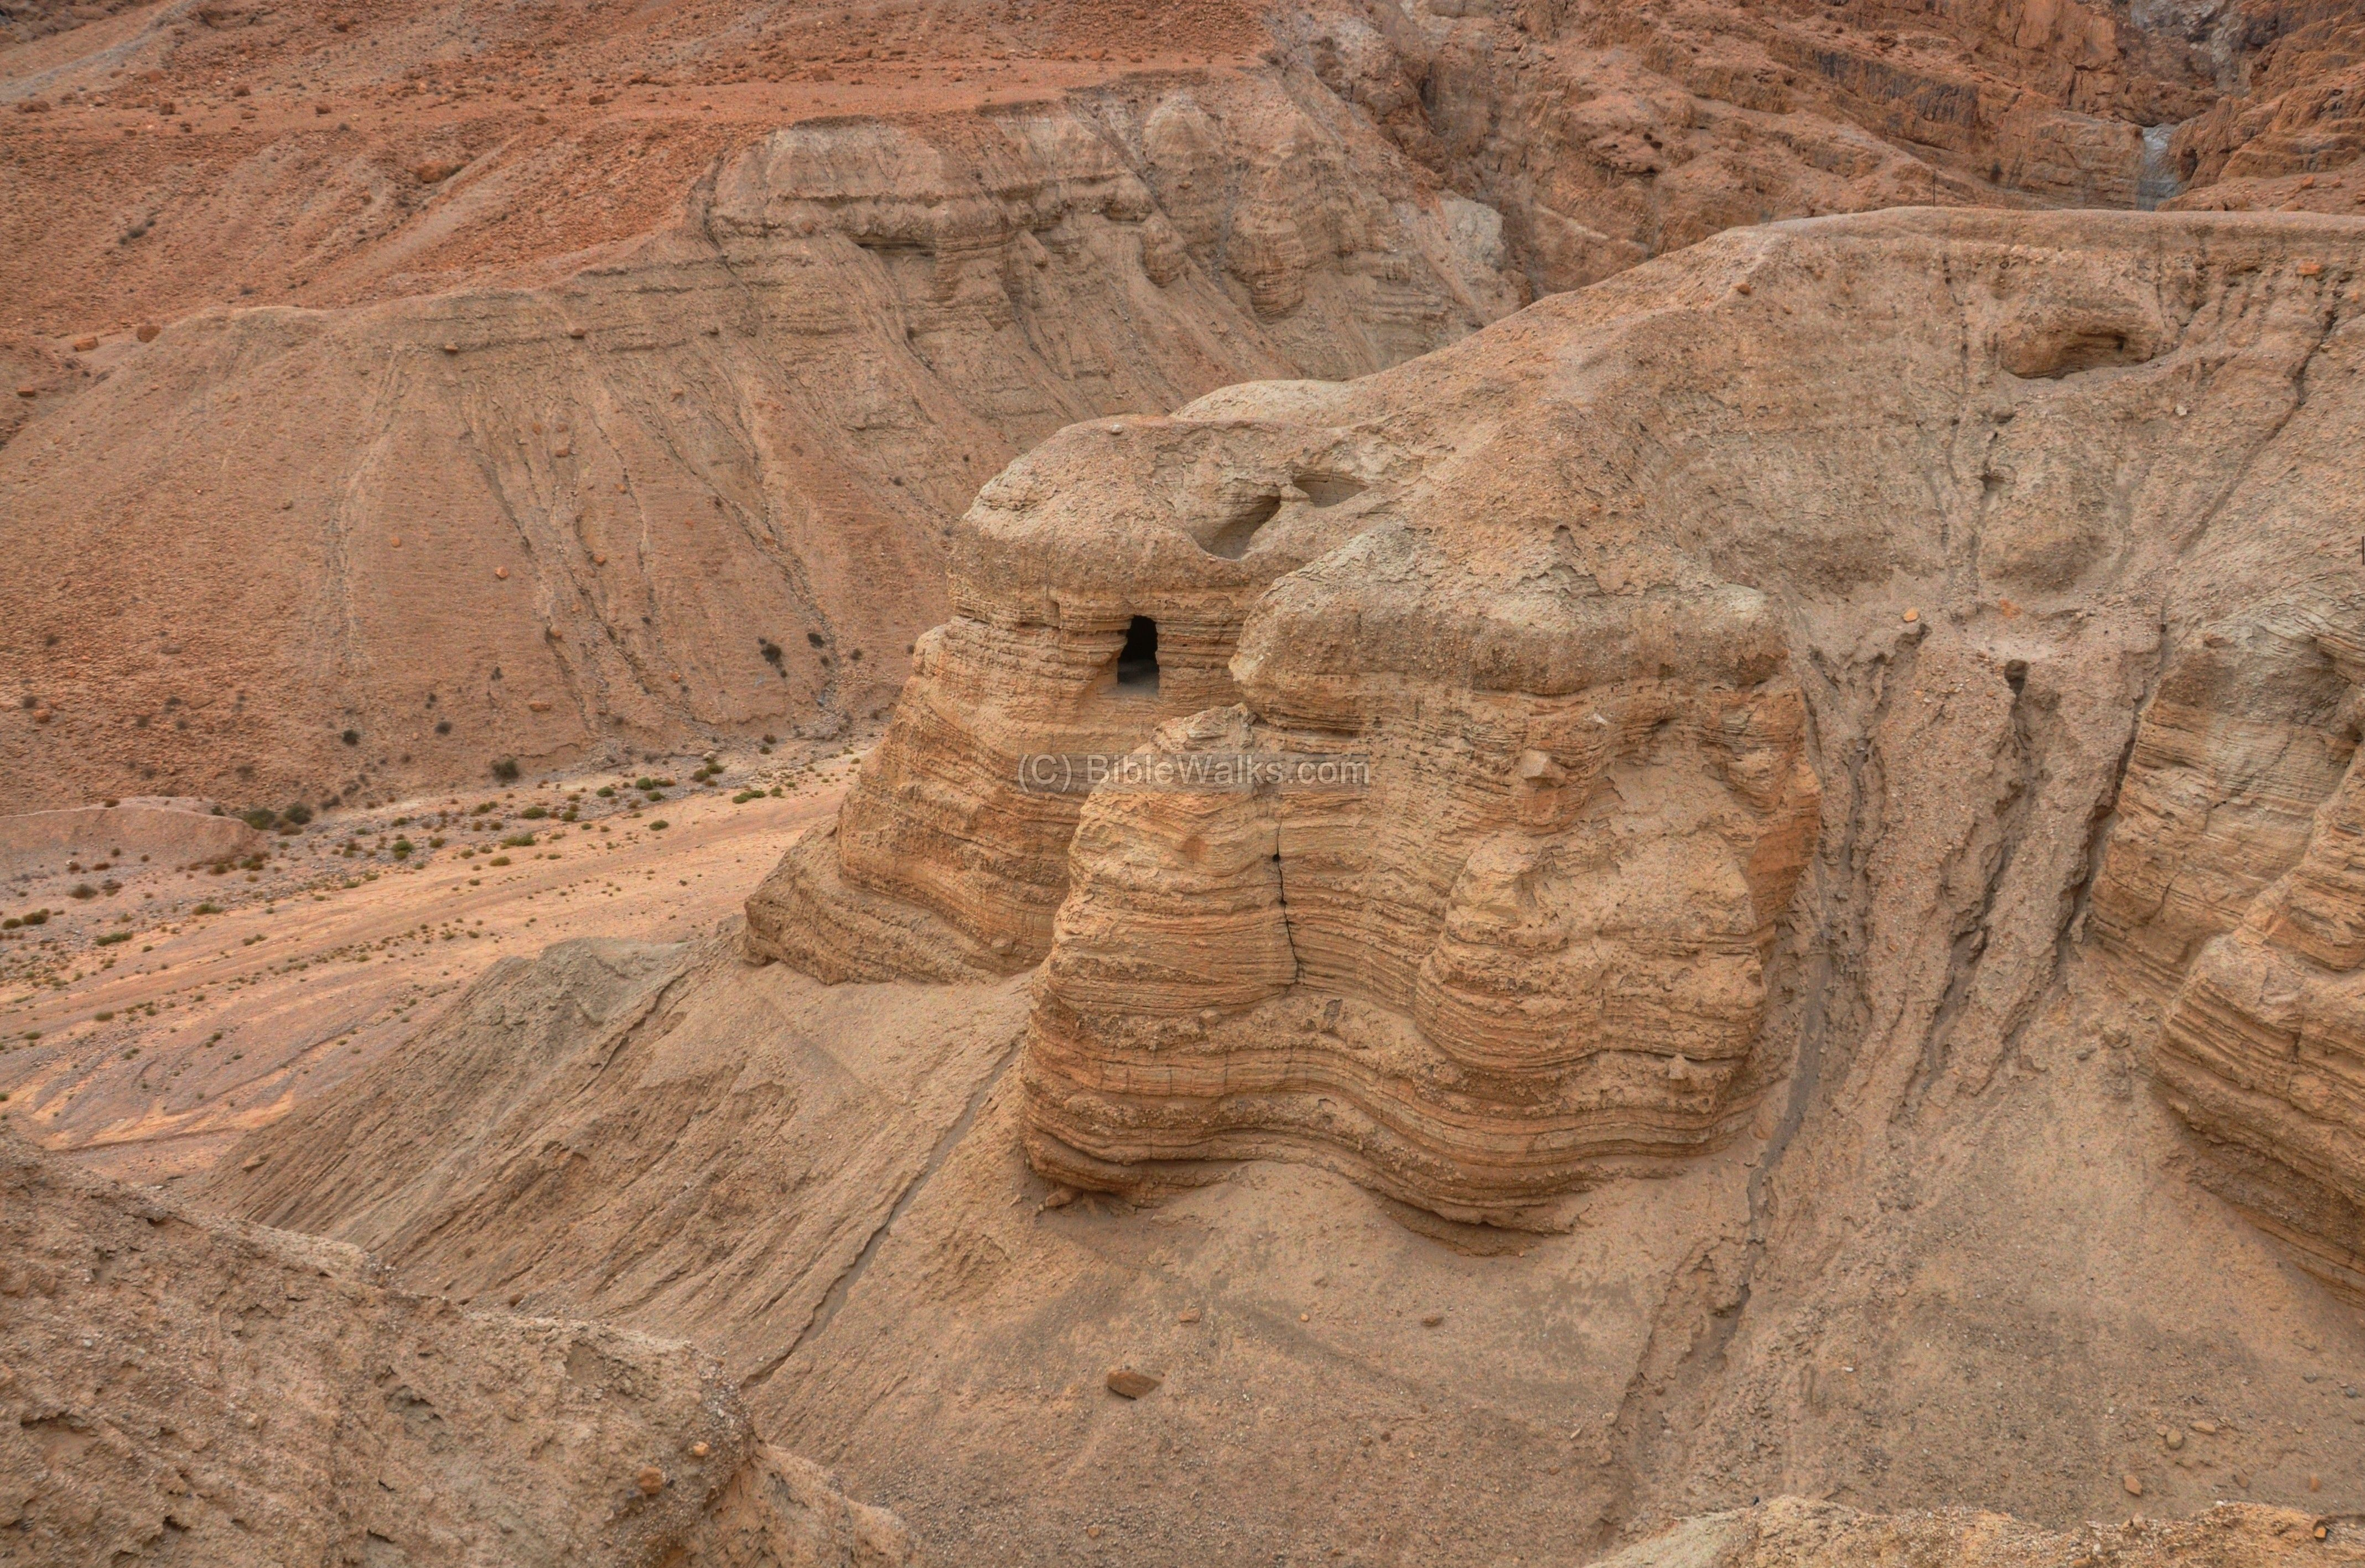 qumran   Inside the hill are several of the famous caves of Qumran, where the ...